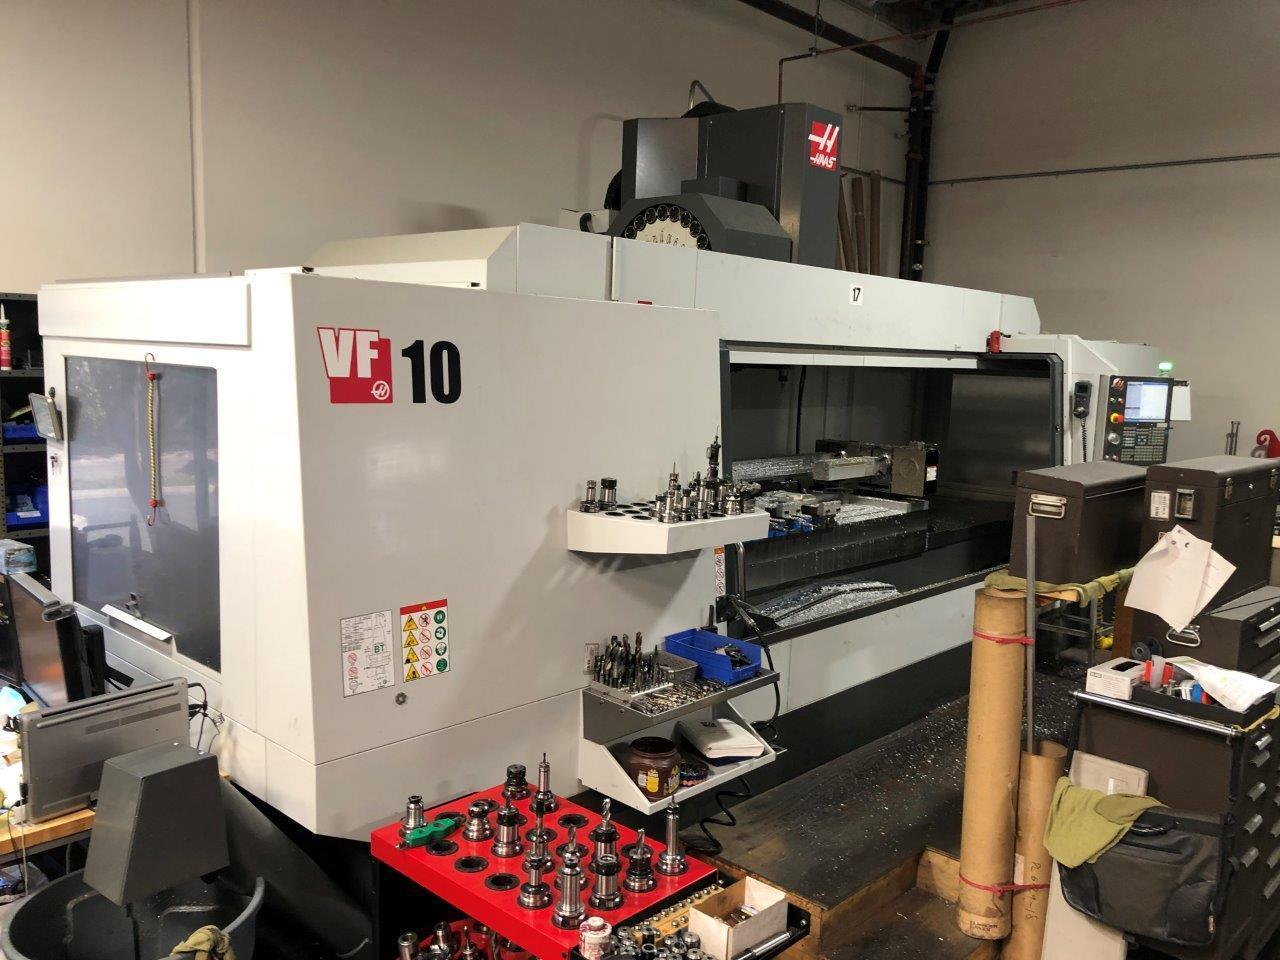 Haas VF-10/40 VMC 2017 with: Haas CNC Control, 4th Axis Drive and Wiring, 30+1 High Speed Mount Tool Changer, Programmable Coolant and Nozzle, Minimum Quantity Lubrication, Remote Jog Handle, Coolant